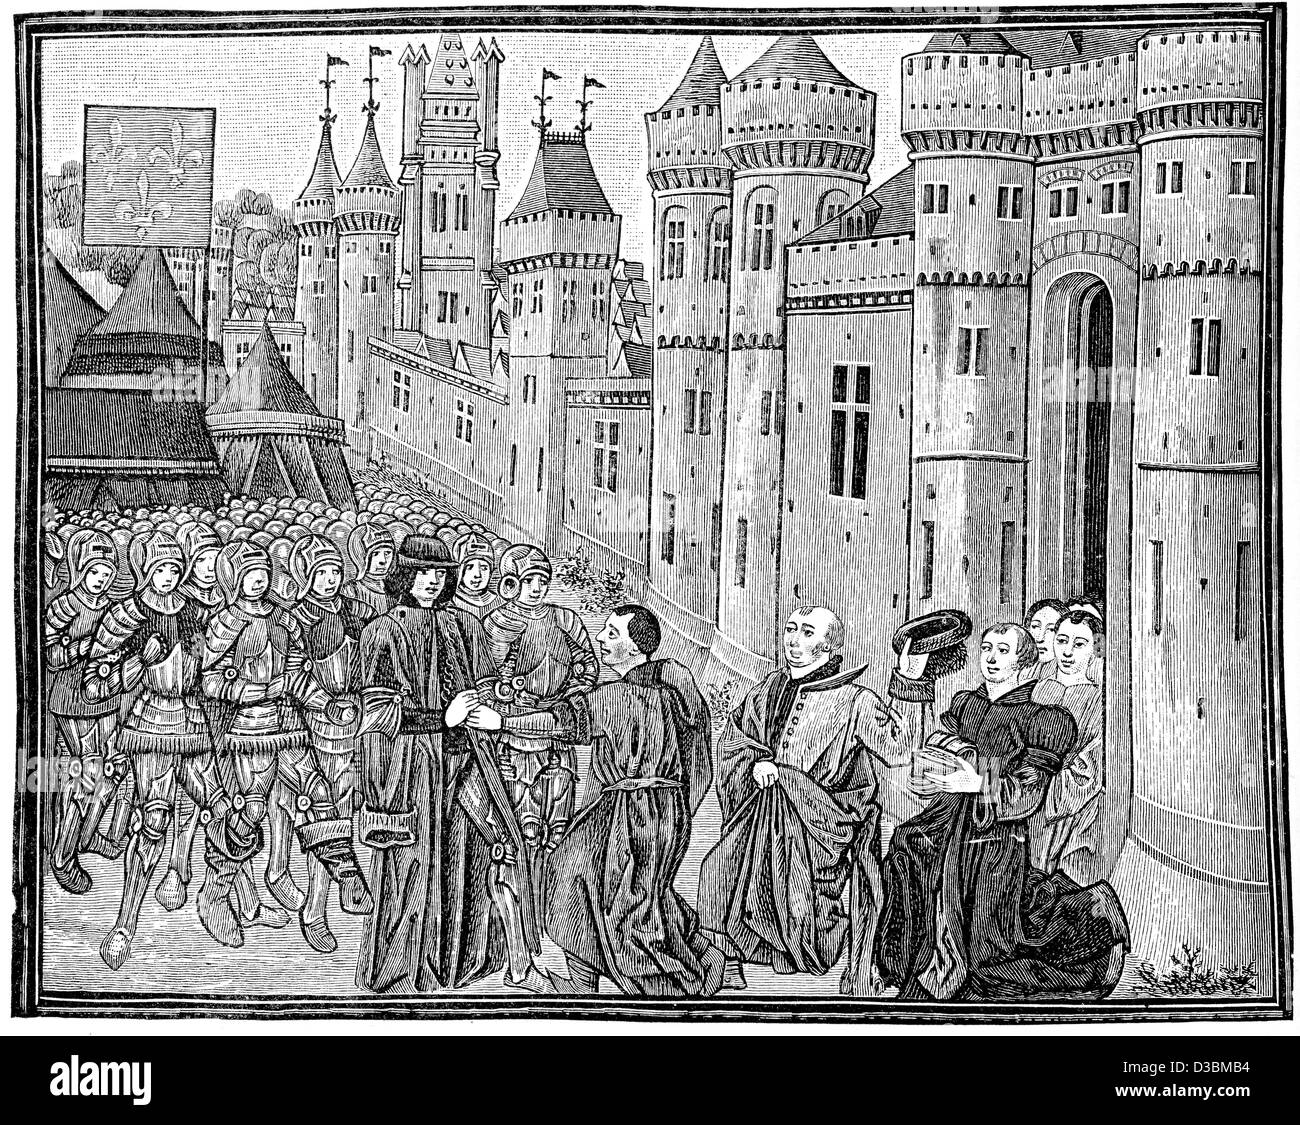 Vintage engraving from a 15th Century original of the Submission of Bordeaux to the French in 1453 during the Hundred - Stock Image